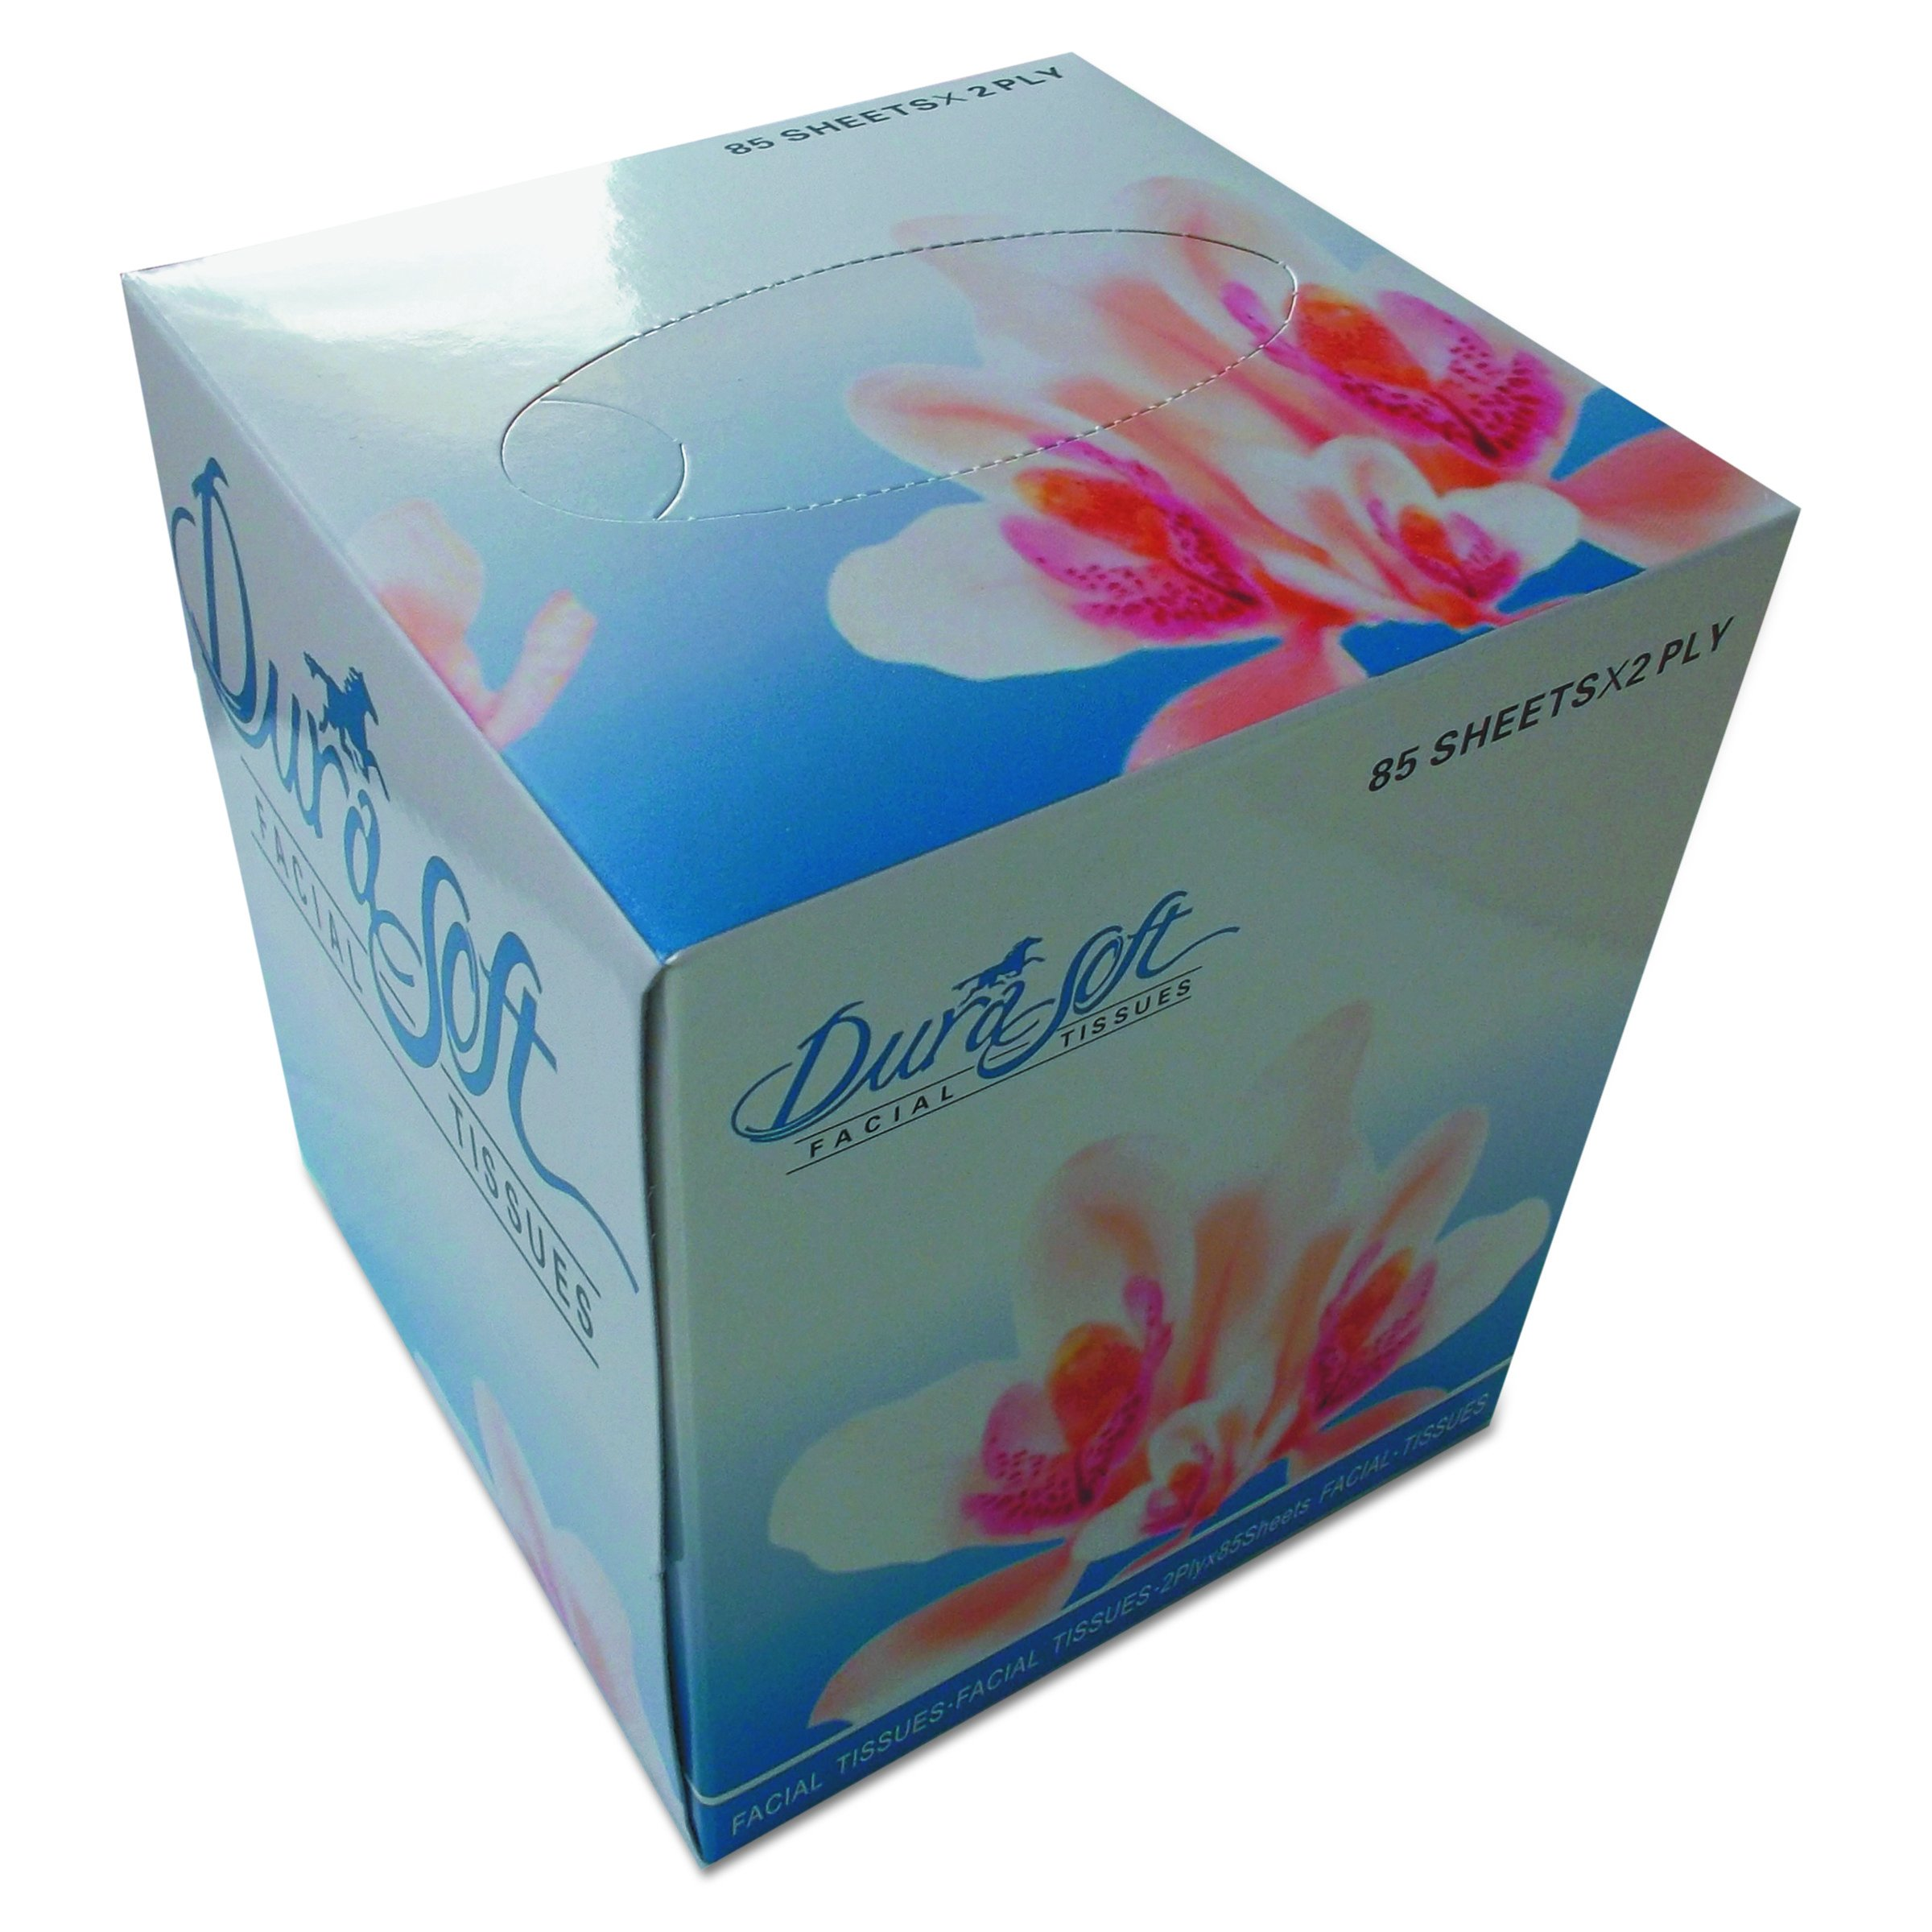 GEN 852D Facial Tissue Cube Box, 2-Ply, White, 85 Sheets/Box, 85 per Box (Case of 36 Boxes)